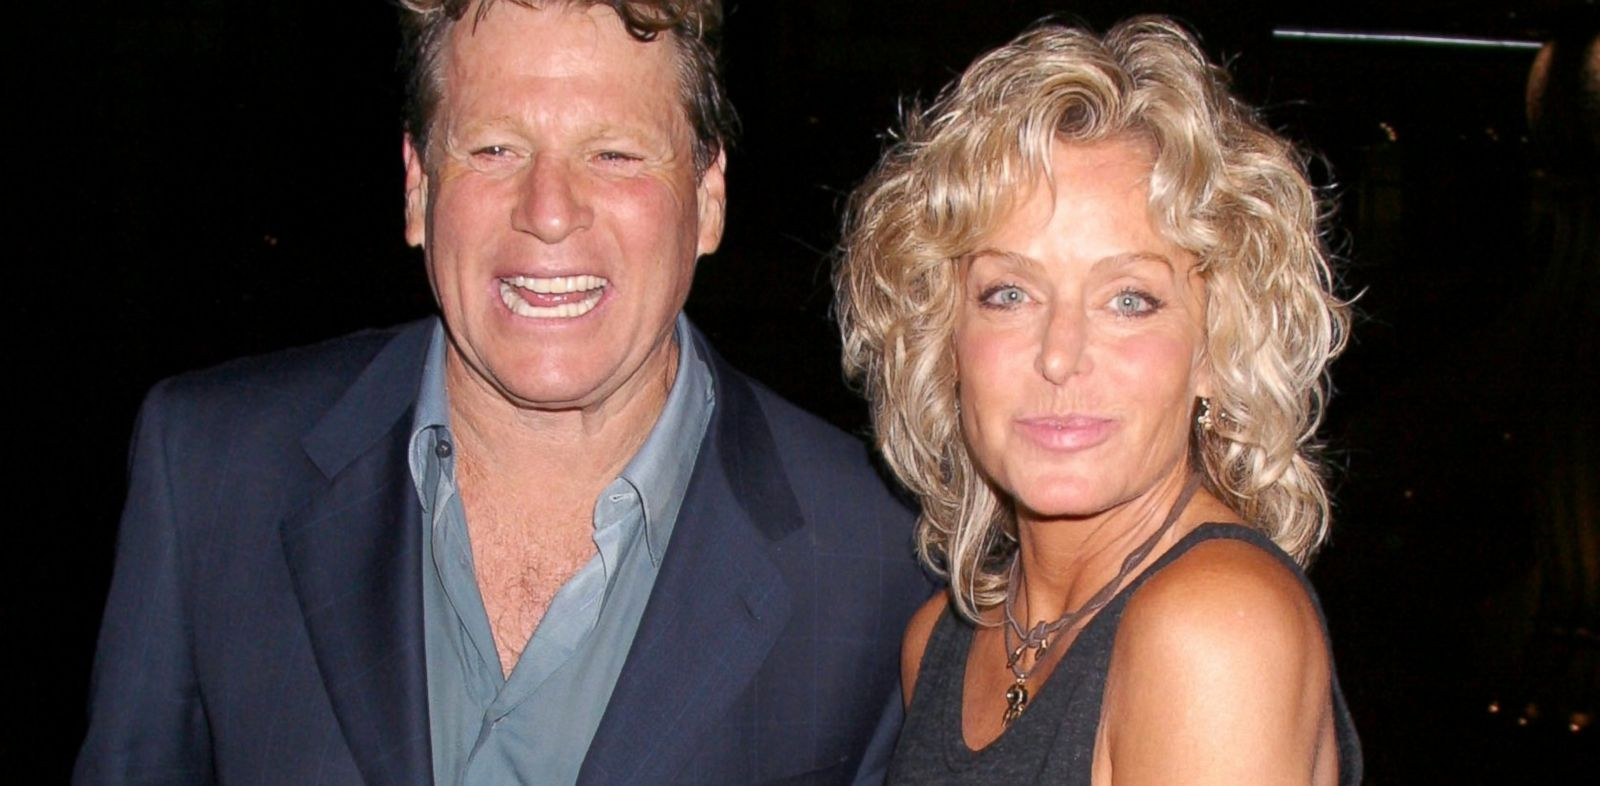 """PHOTO: Ryan ONeal and Farrah Fawcett attend """" Malibus Most Wanted"""" premiere in Los Angeles, April 10, 2003."""